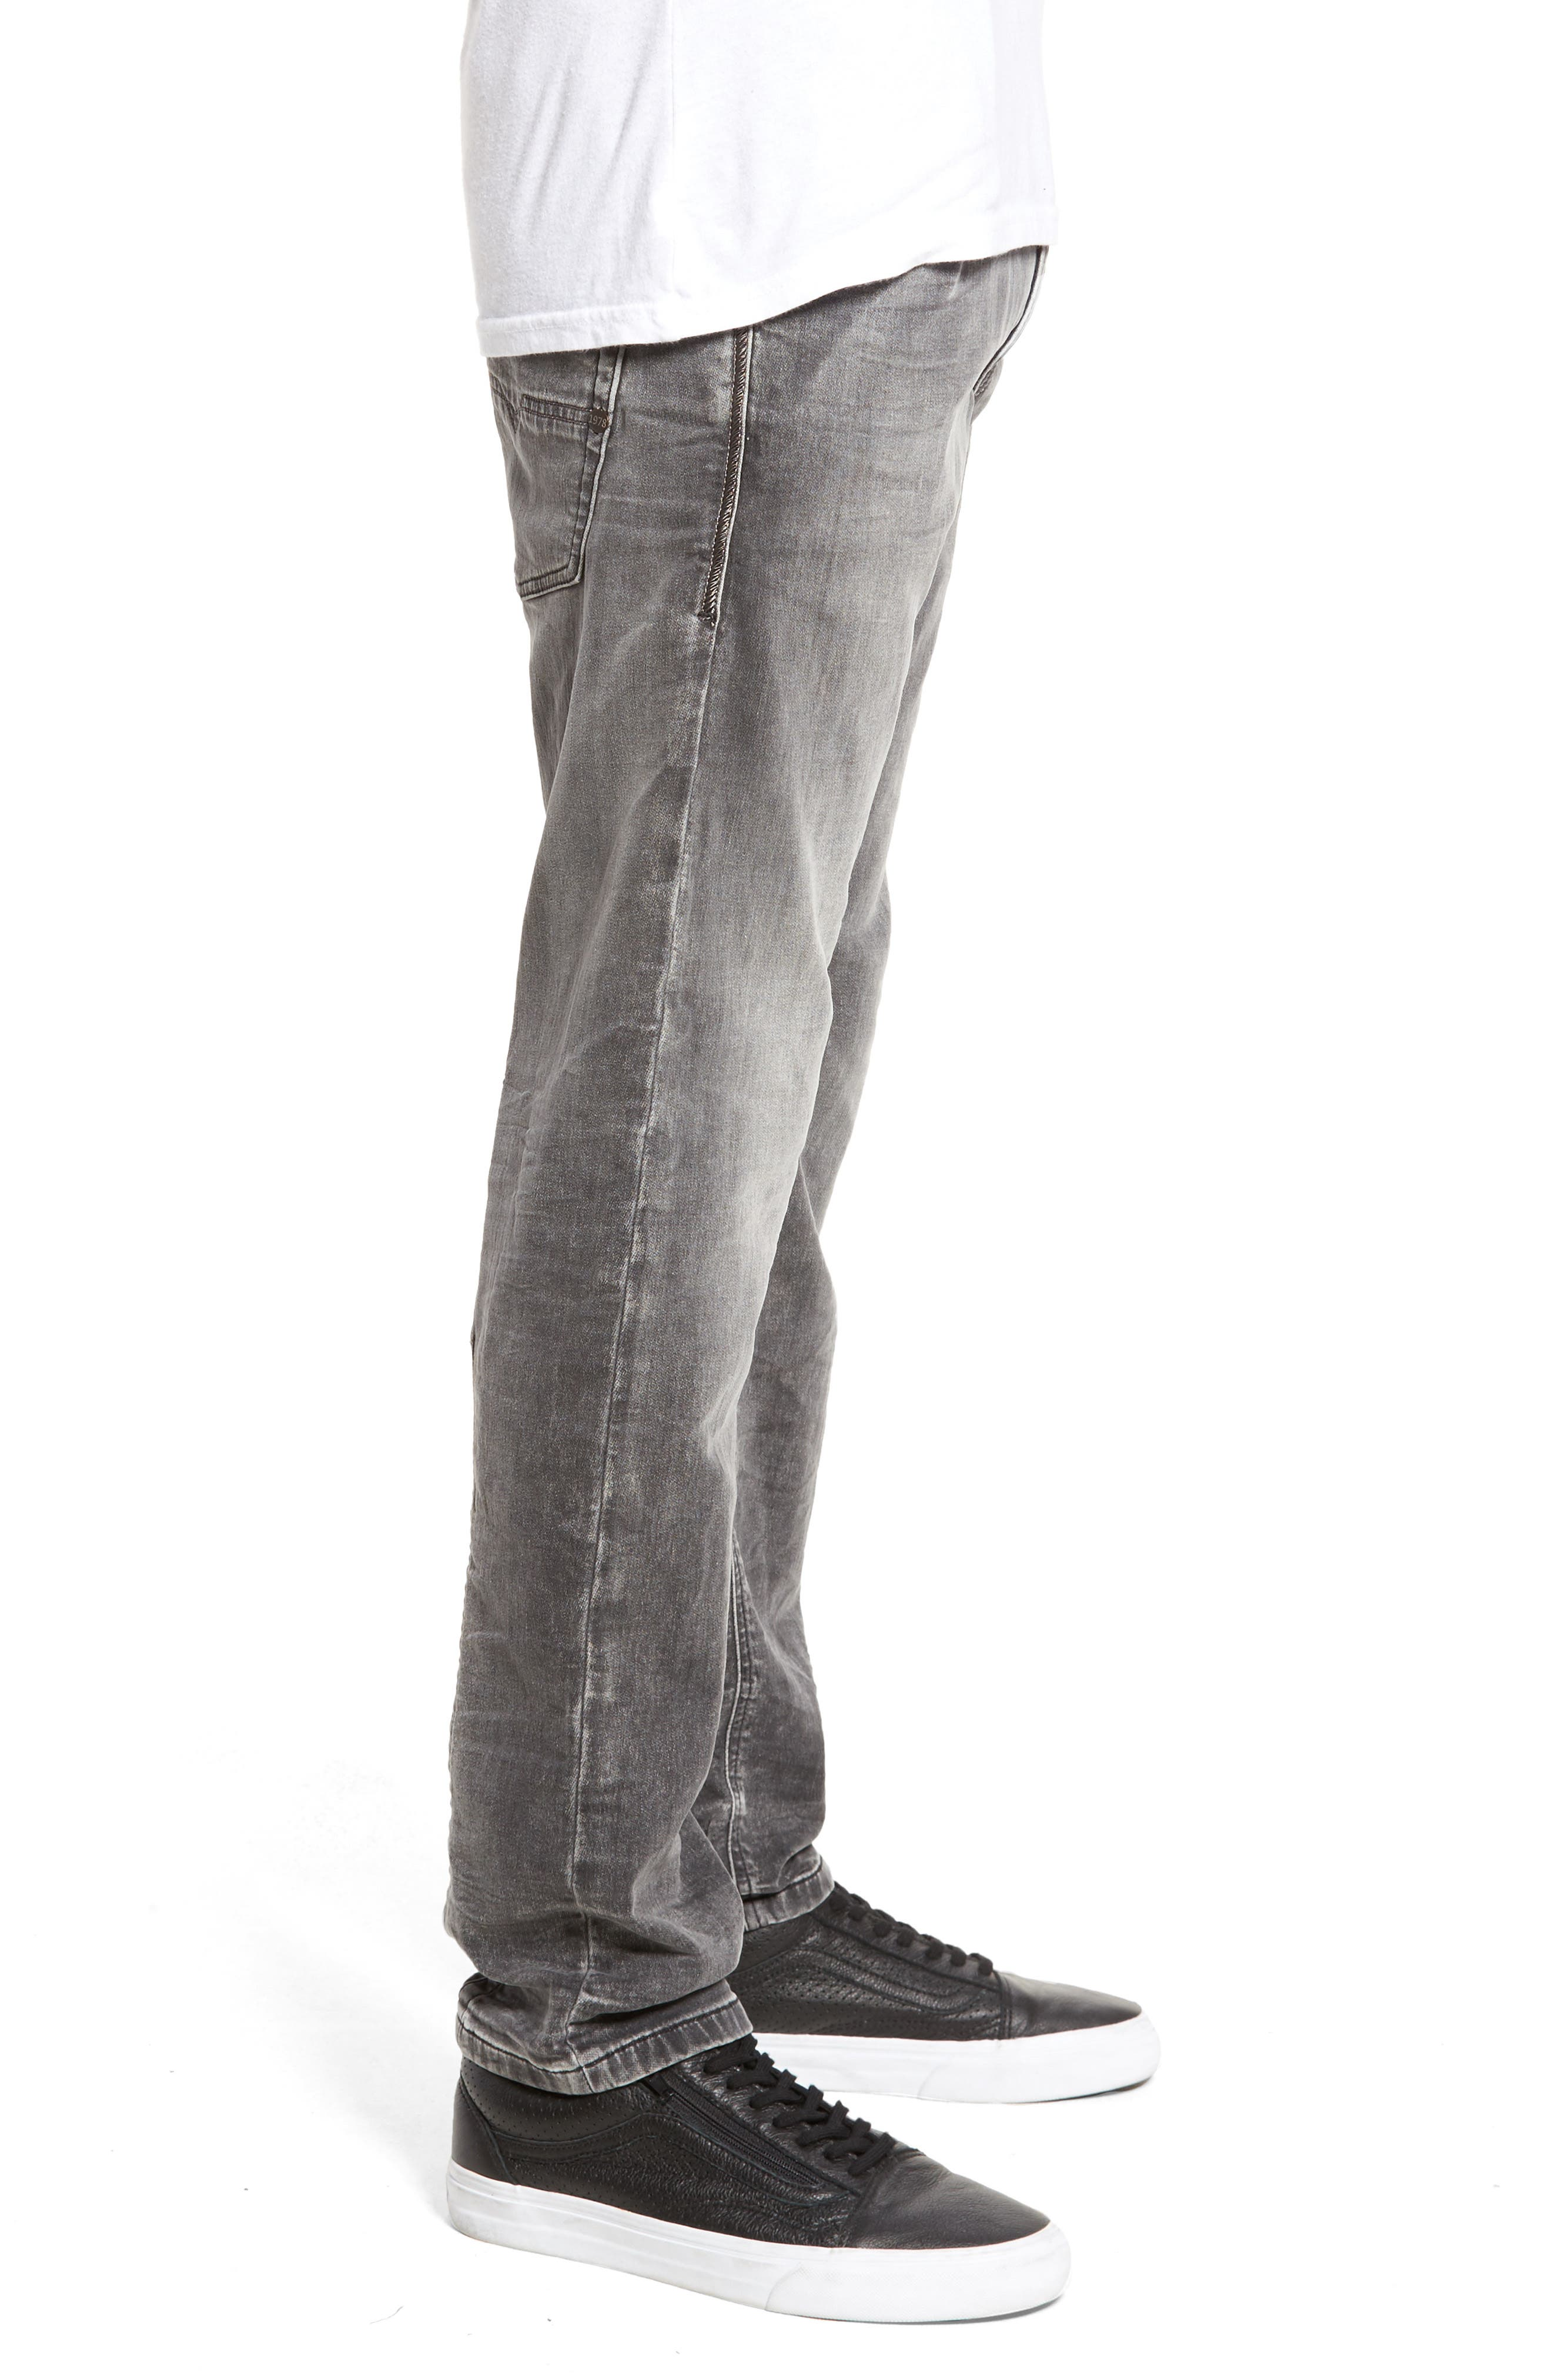 Krooley Slouchy Skinny Fit Jeans,                             Alternate thumbnail 3, color,                             0855B